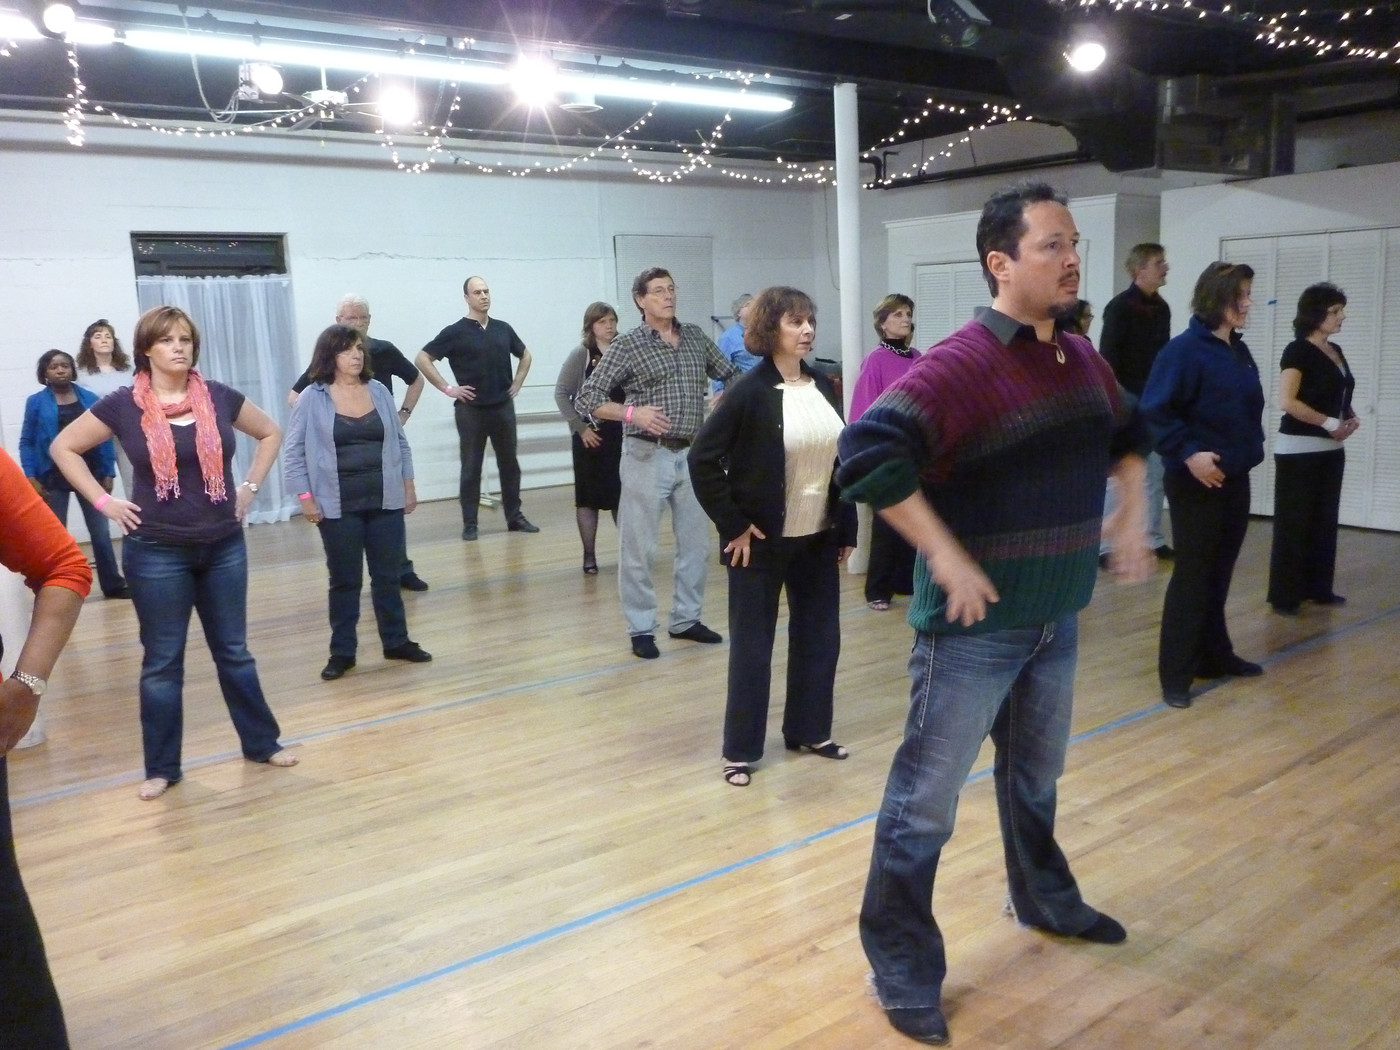 Robert Cordoba leads a West Coast Swing Warmup